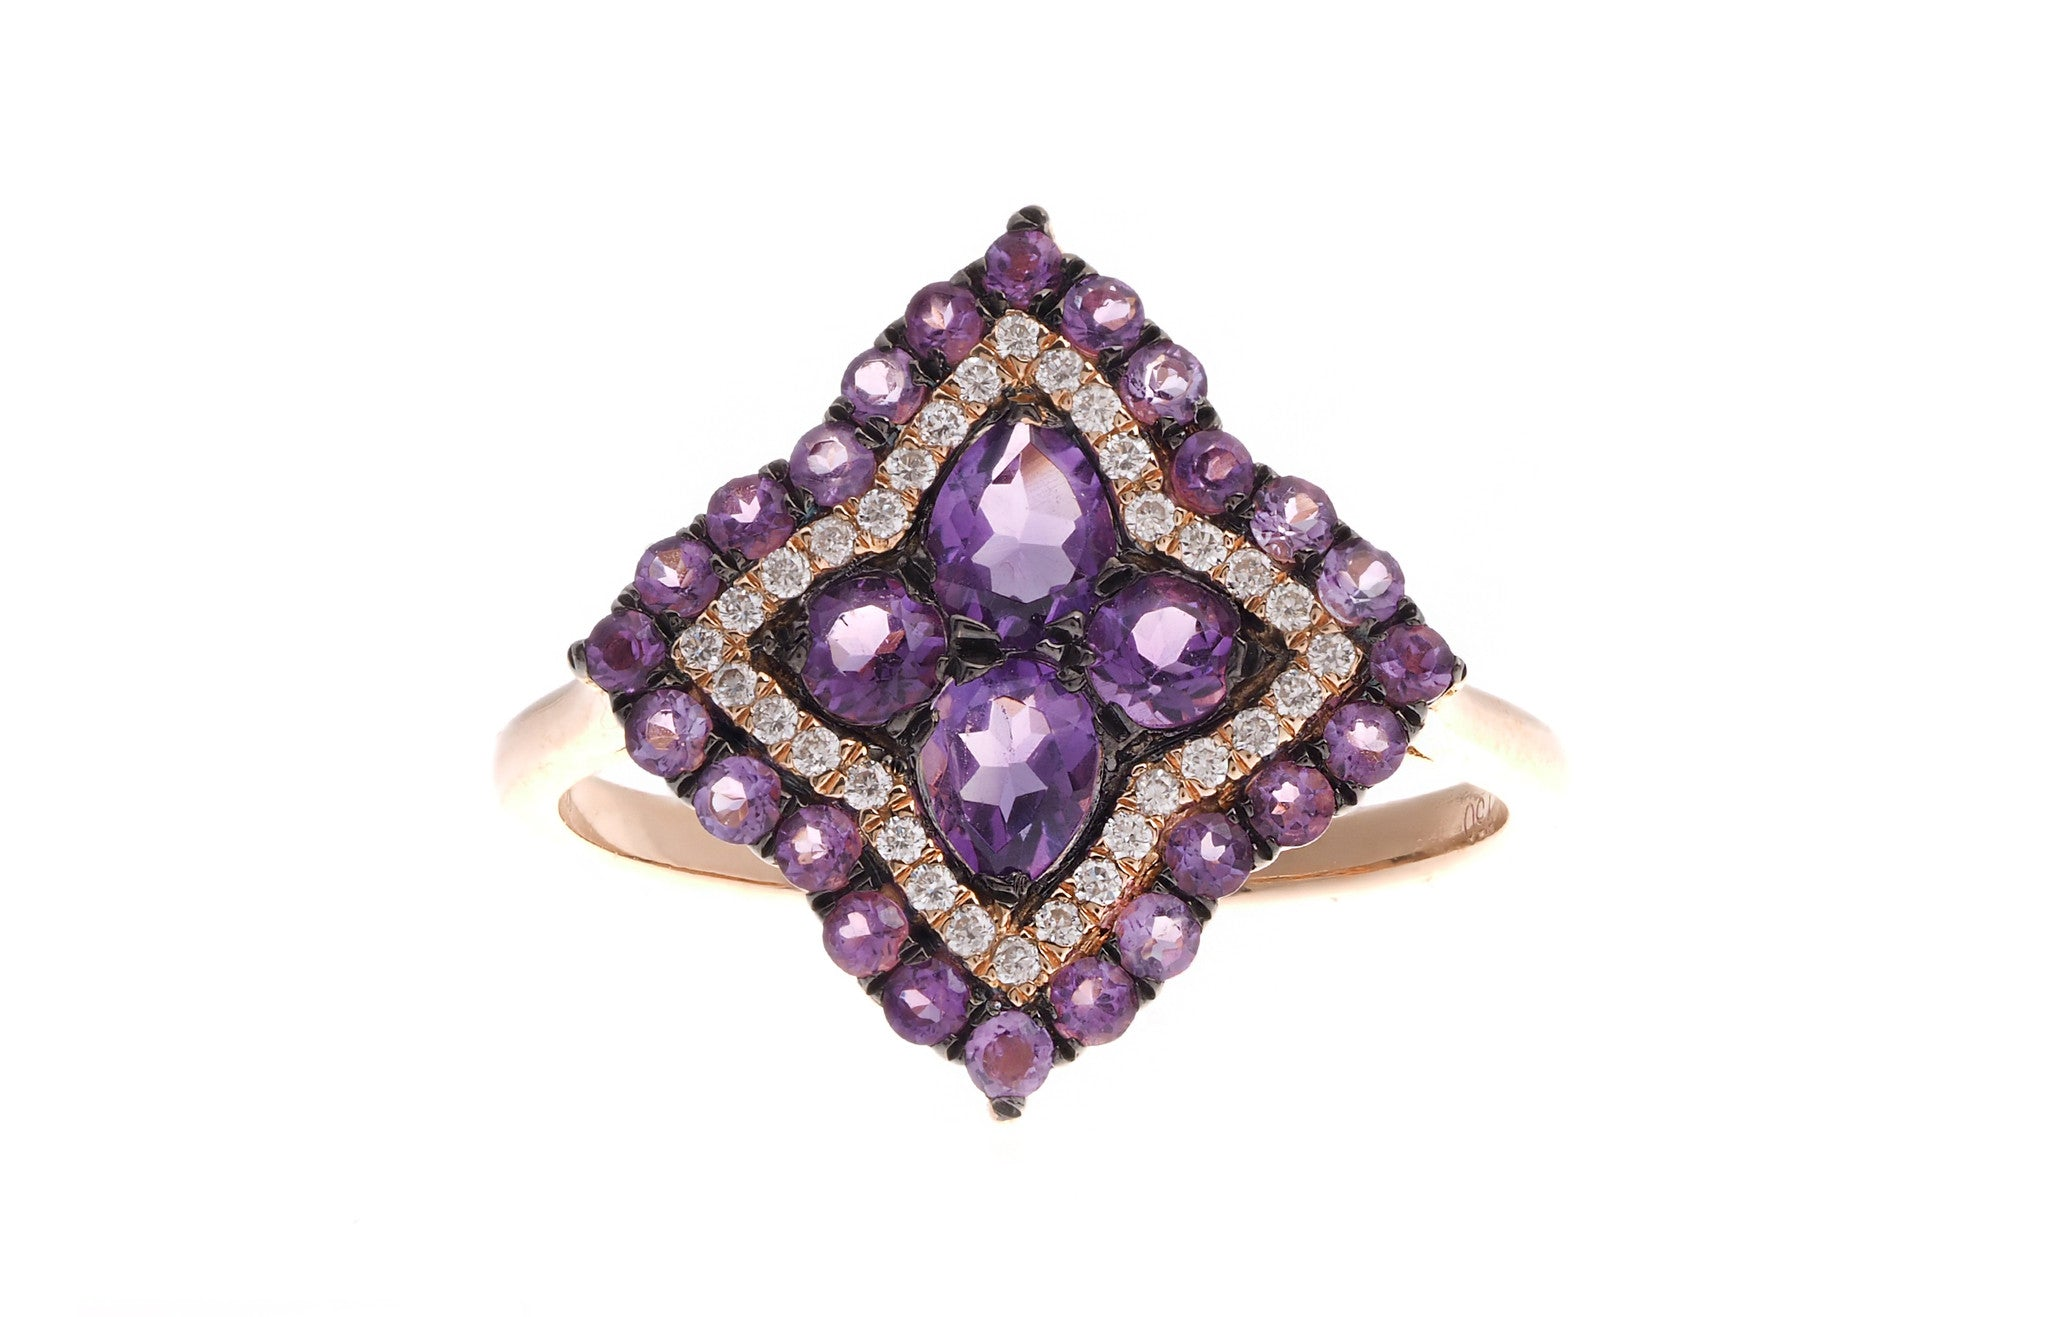 18ct Rose Gold Amethyst & Diamond Dress Ring, Minar Jewellers - 4